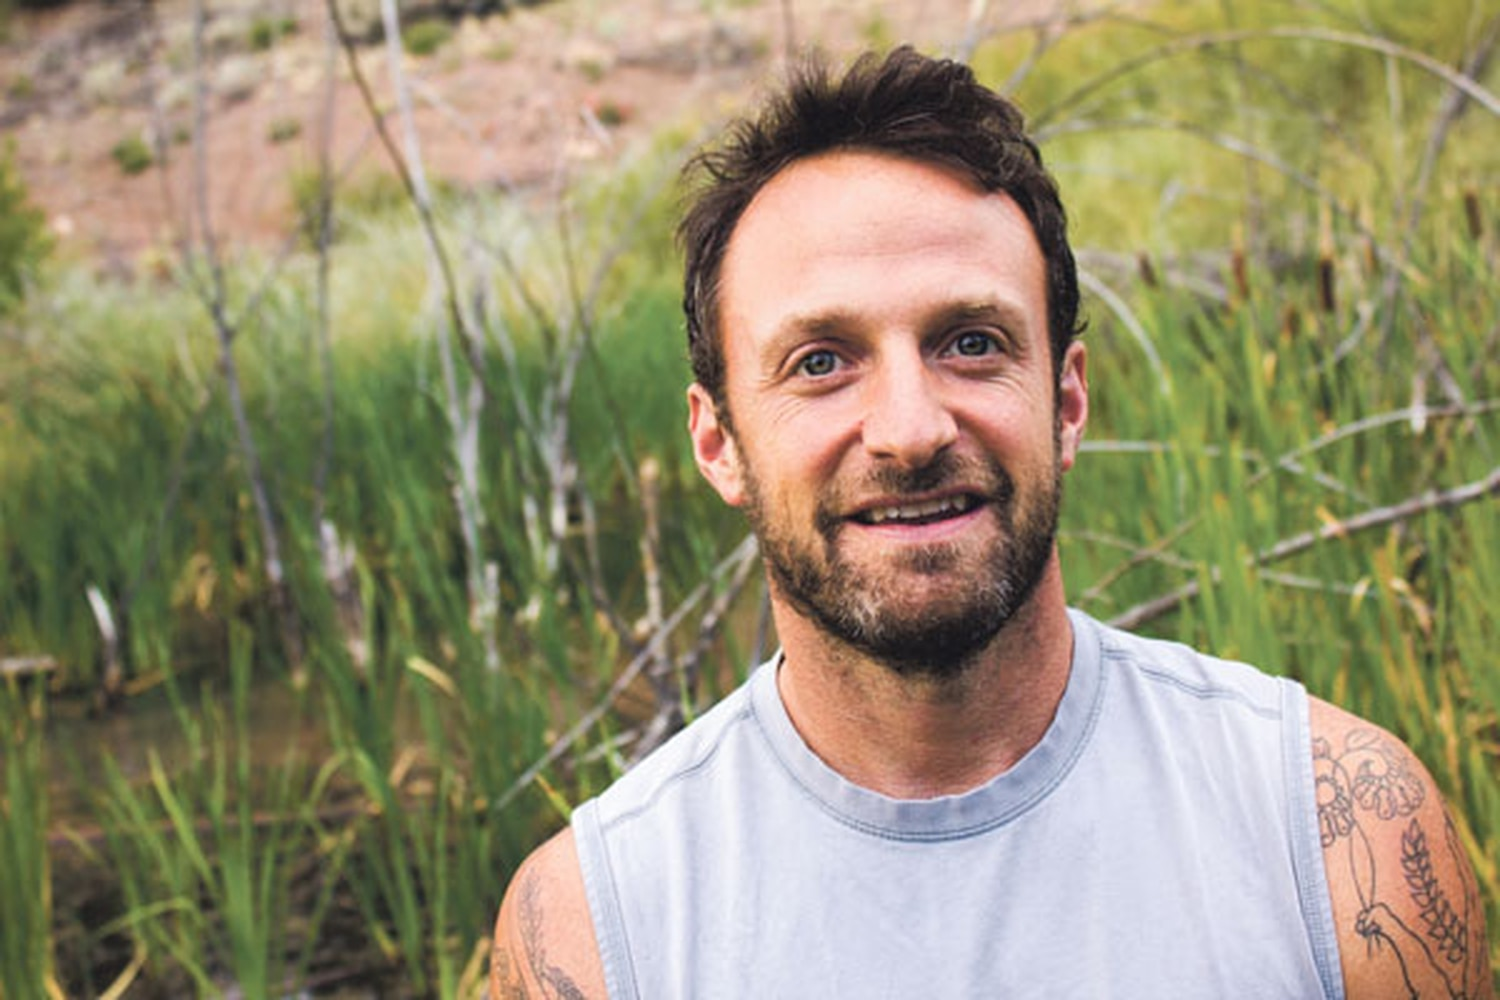 """Local yoga instructor Josh Schrei """"finds excitement by seeing other people tap into that inner connection,"""" a friend says."""